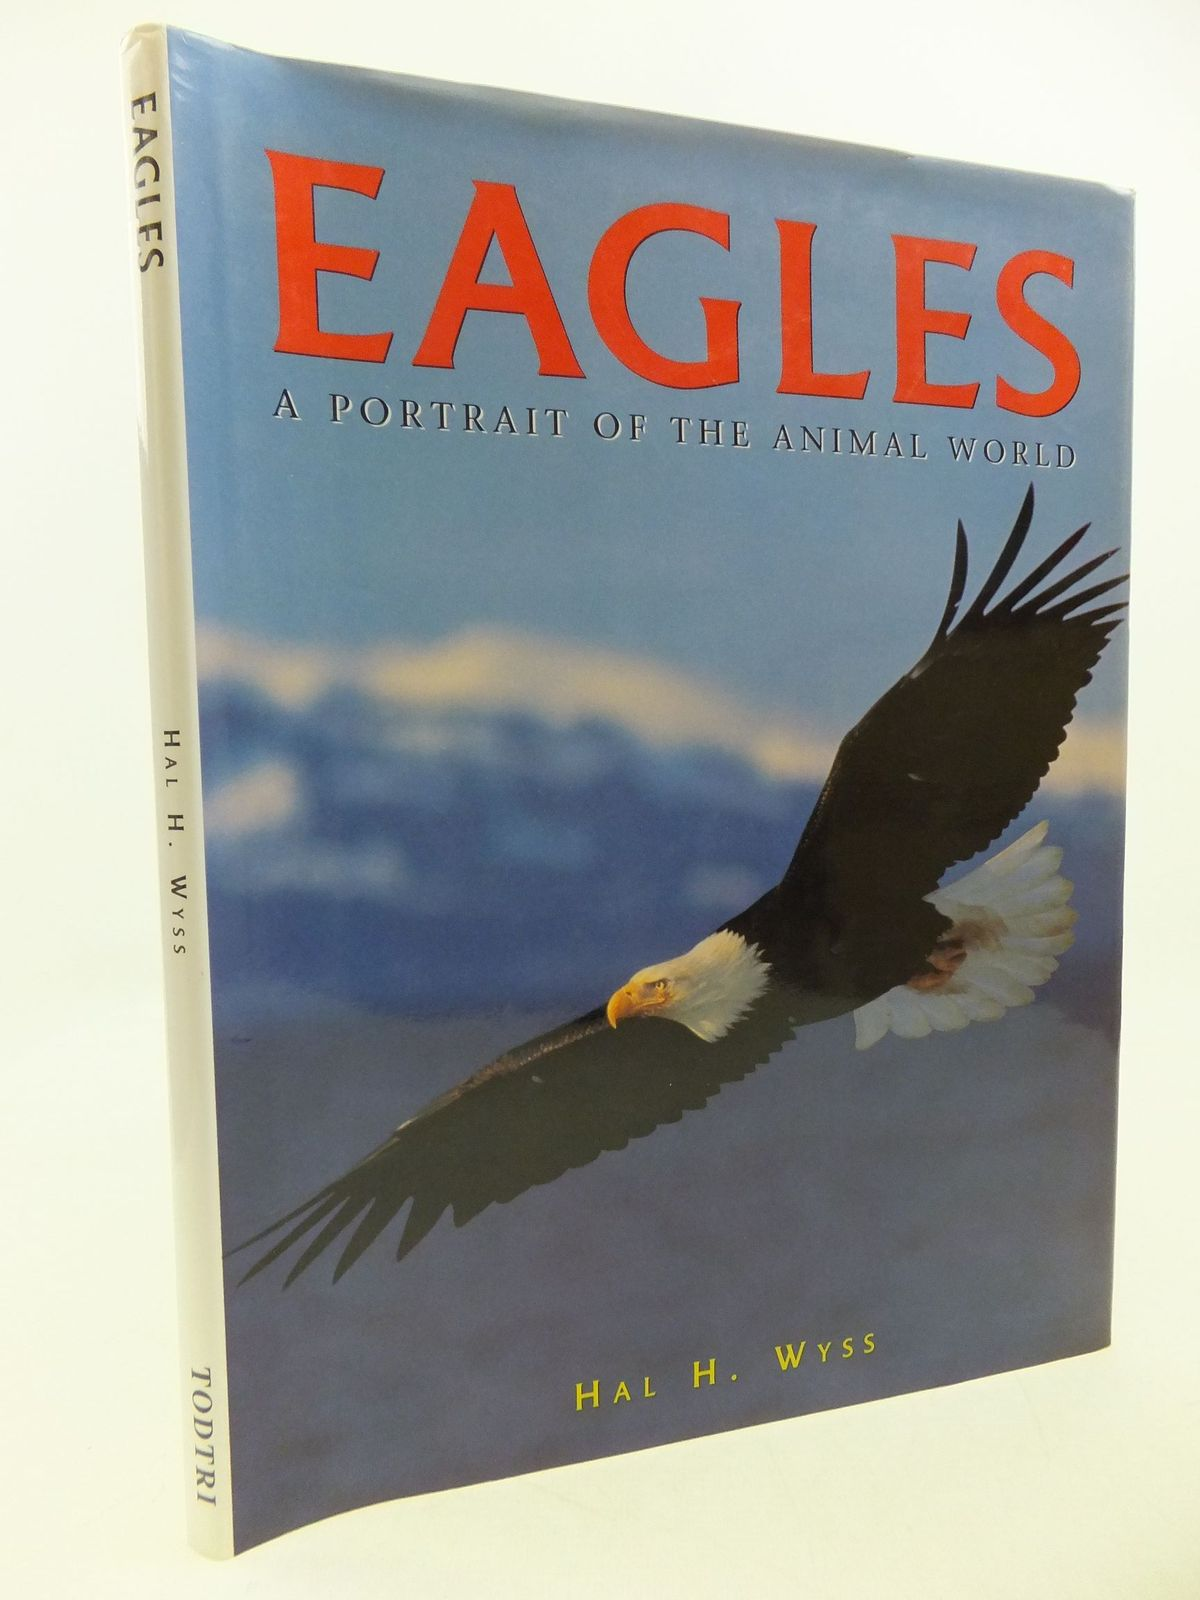 Photo of EAGLES A PORTRAIT OF THE ANIMAL WORLD written by Wyss, Hal H. published by Todtri (STOCK CODE: 1709813)  for sale by Stella & Rose's Books